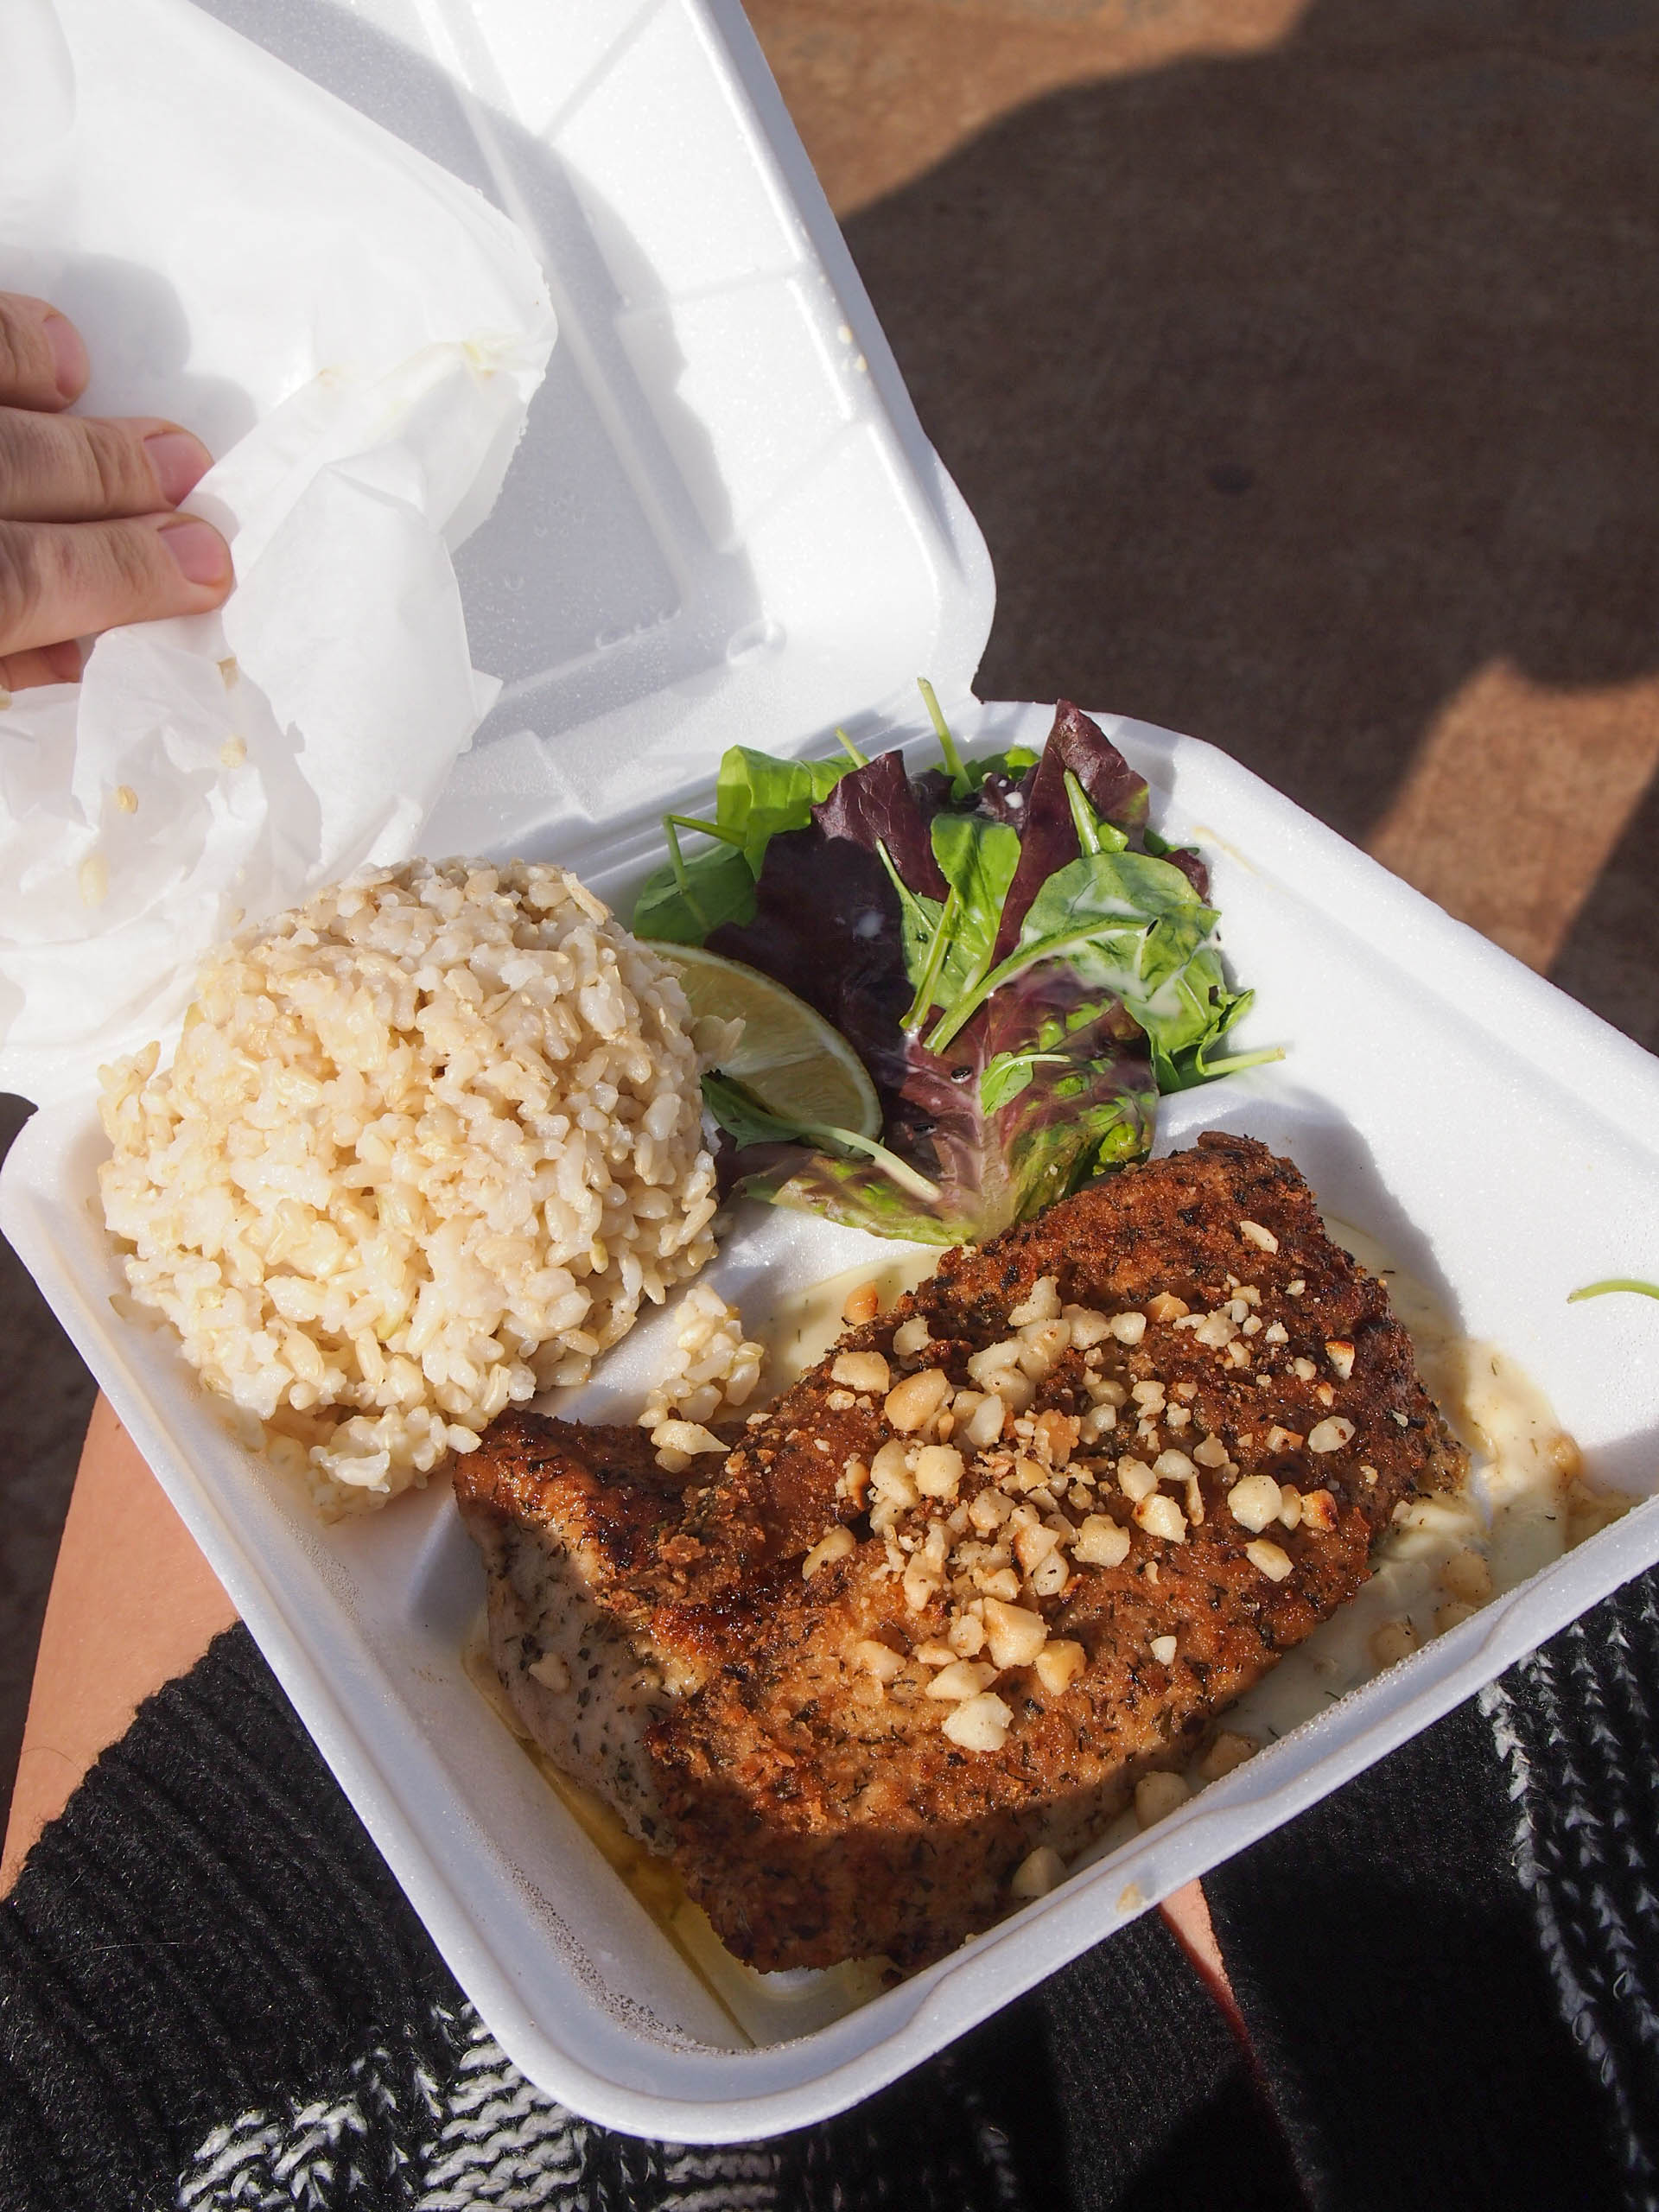 Macadamia nut crusted ahi from fish express